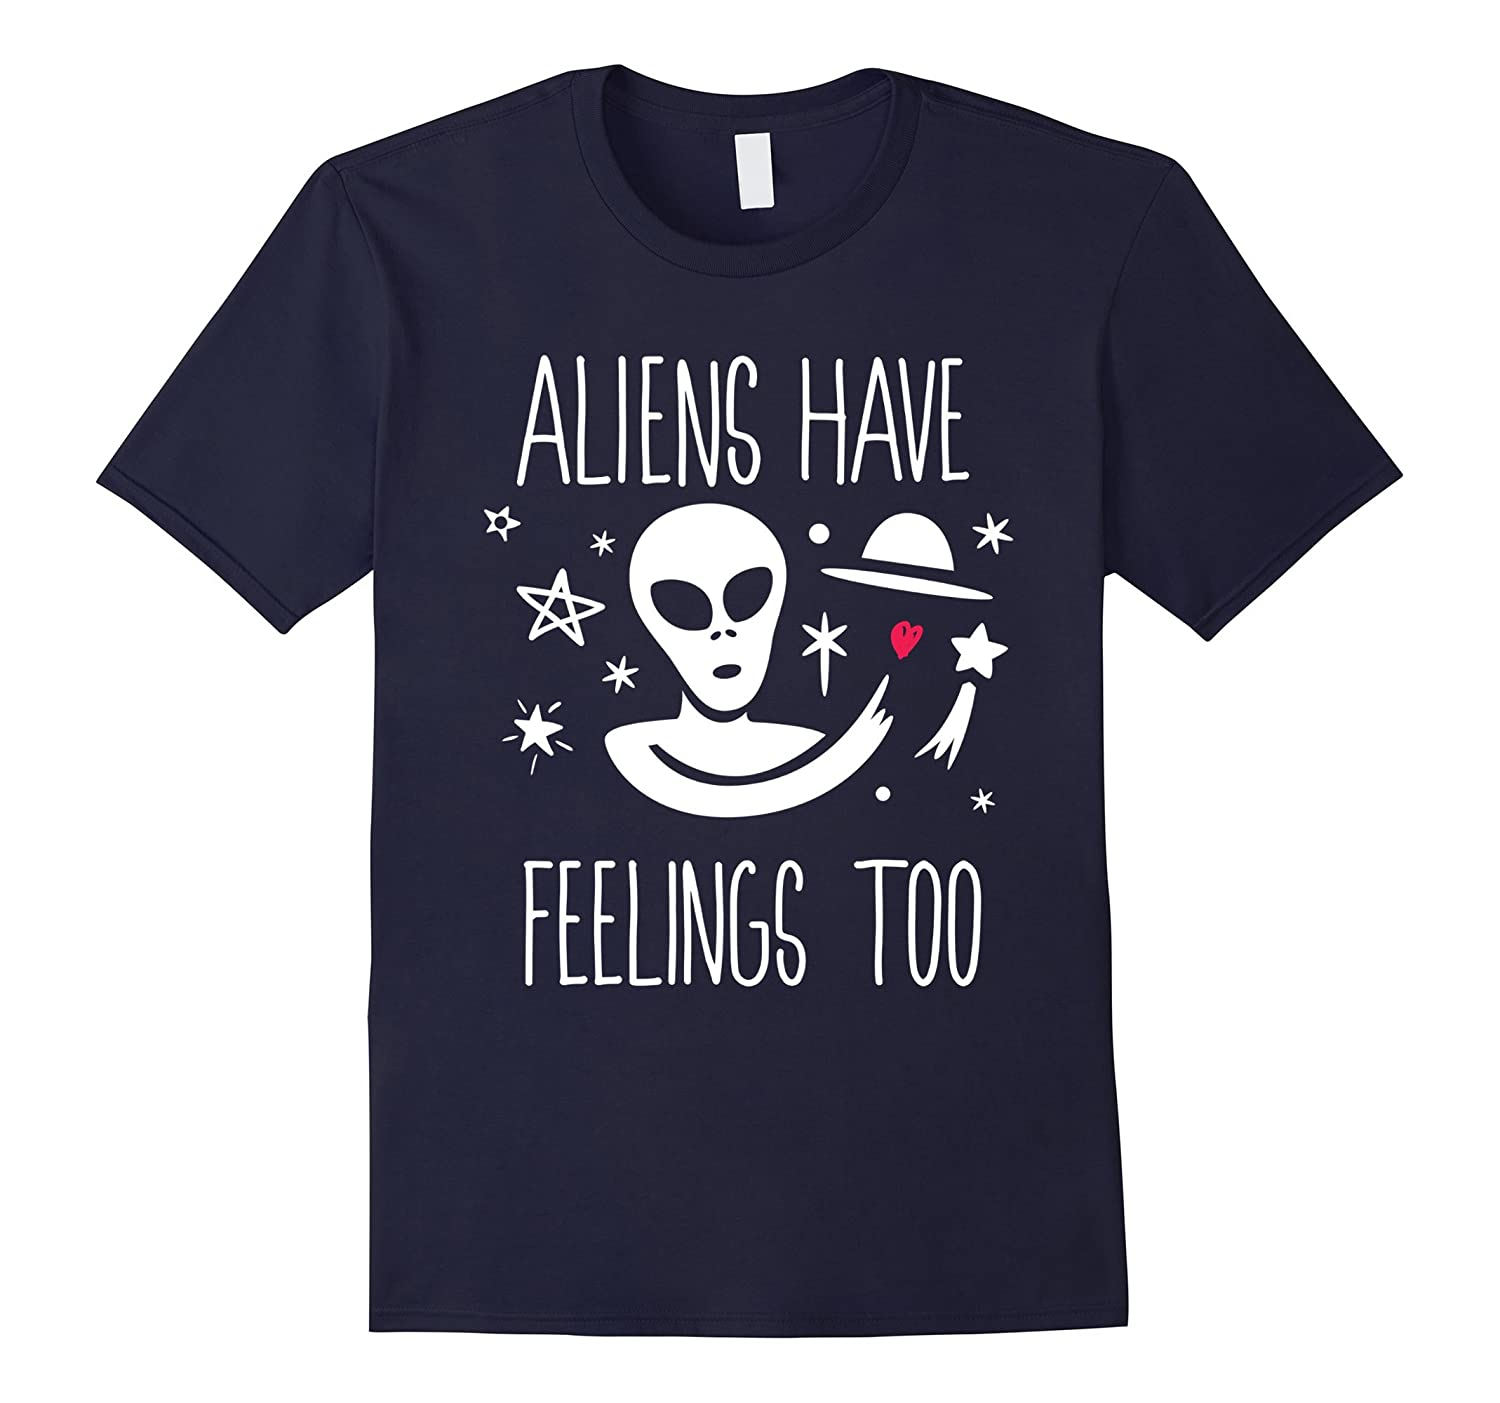 Aliens Have Feelings Too Funny Sci-Fi Cosmic Humor T-shirt-CL